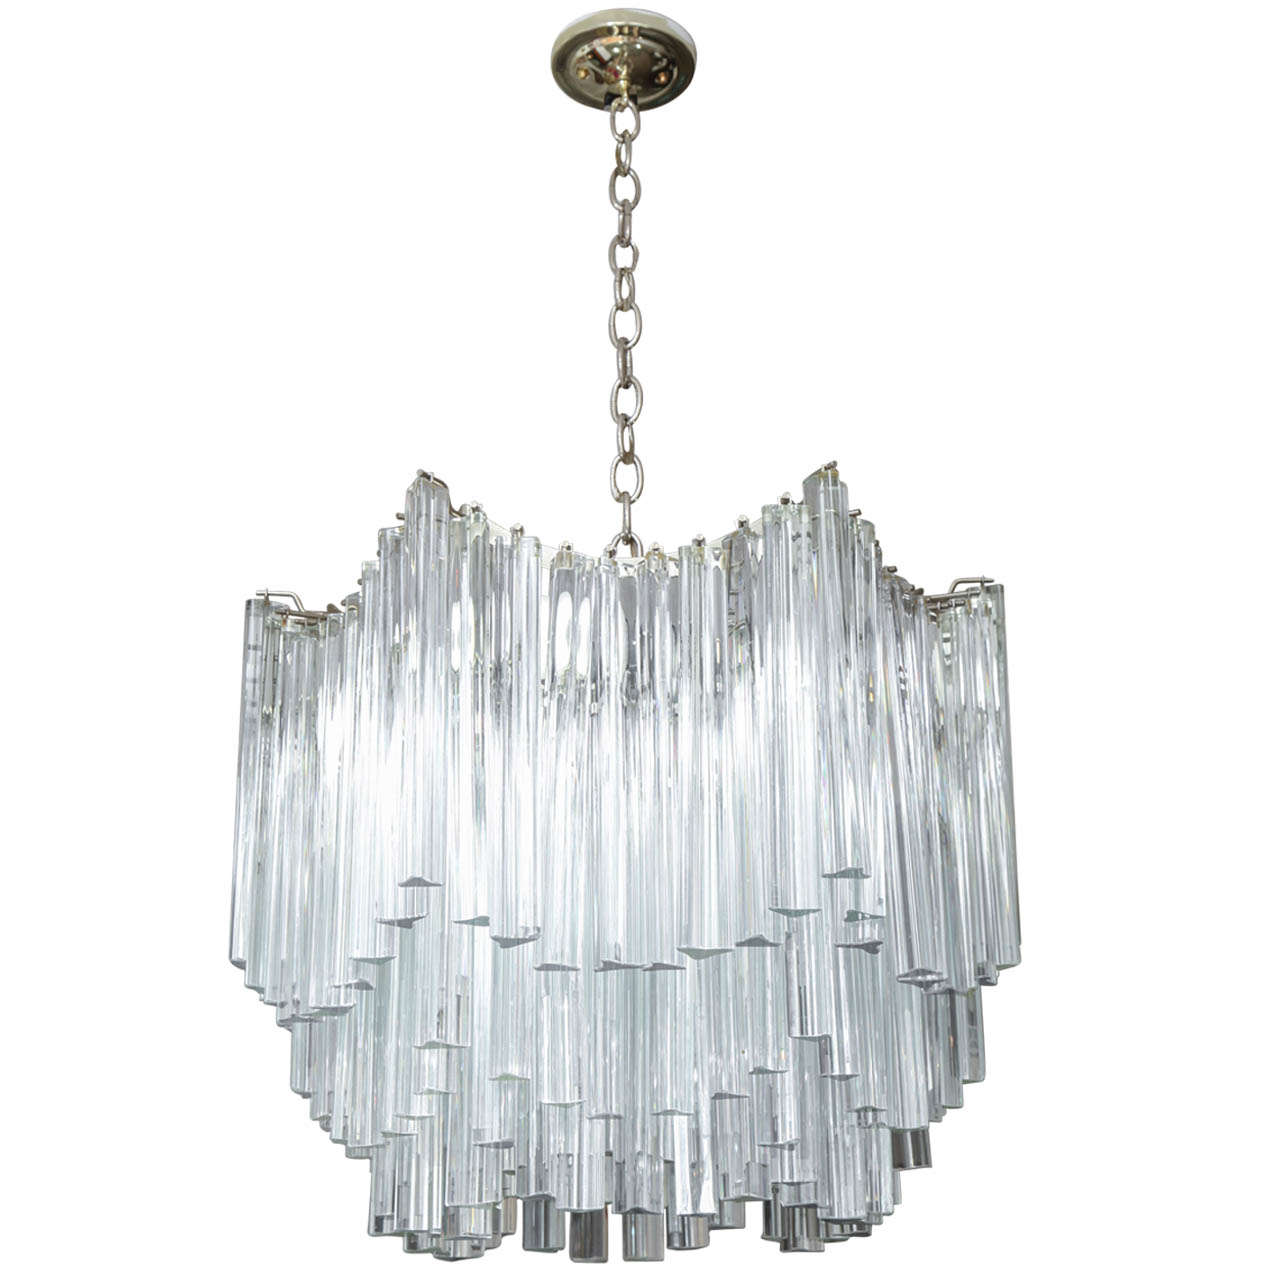 Six Tier Venini Chandelier At 1stdibs